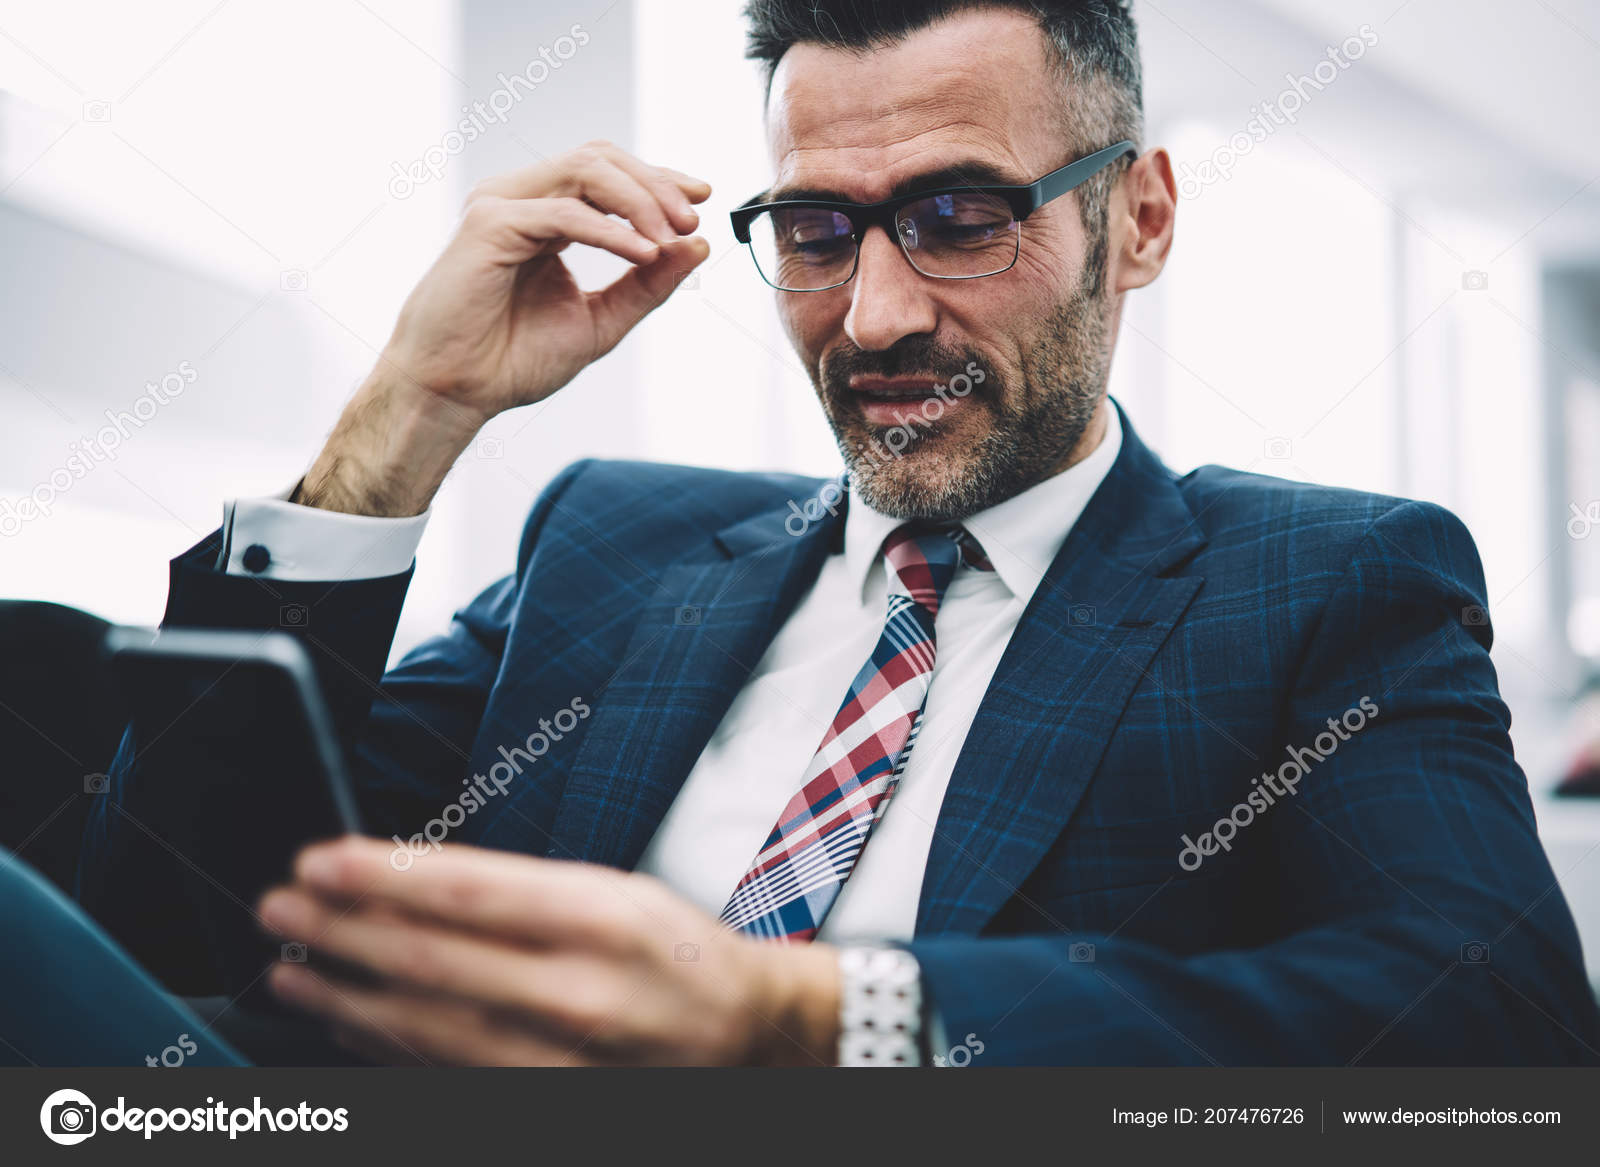 d97330c215b8 Cheerful mature entrepreneur reading funny notification on smartphone  device sitting in office.Successful proud ceo in formal wear chatting  online on ...